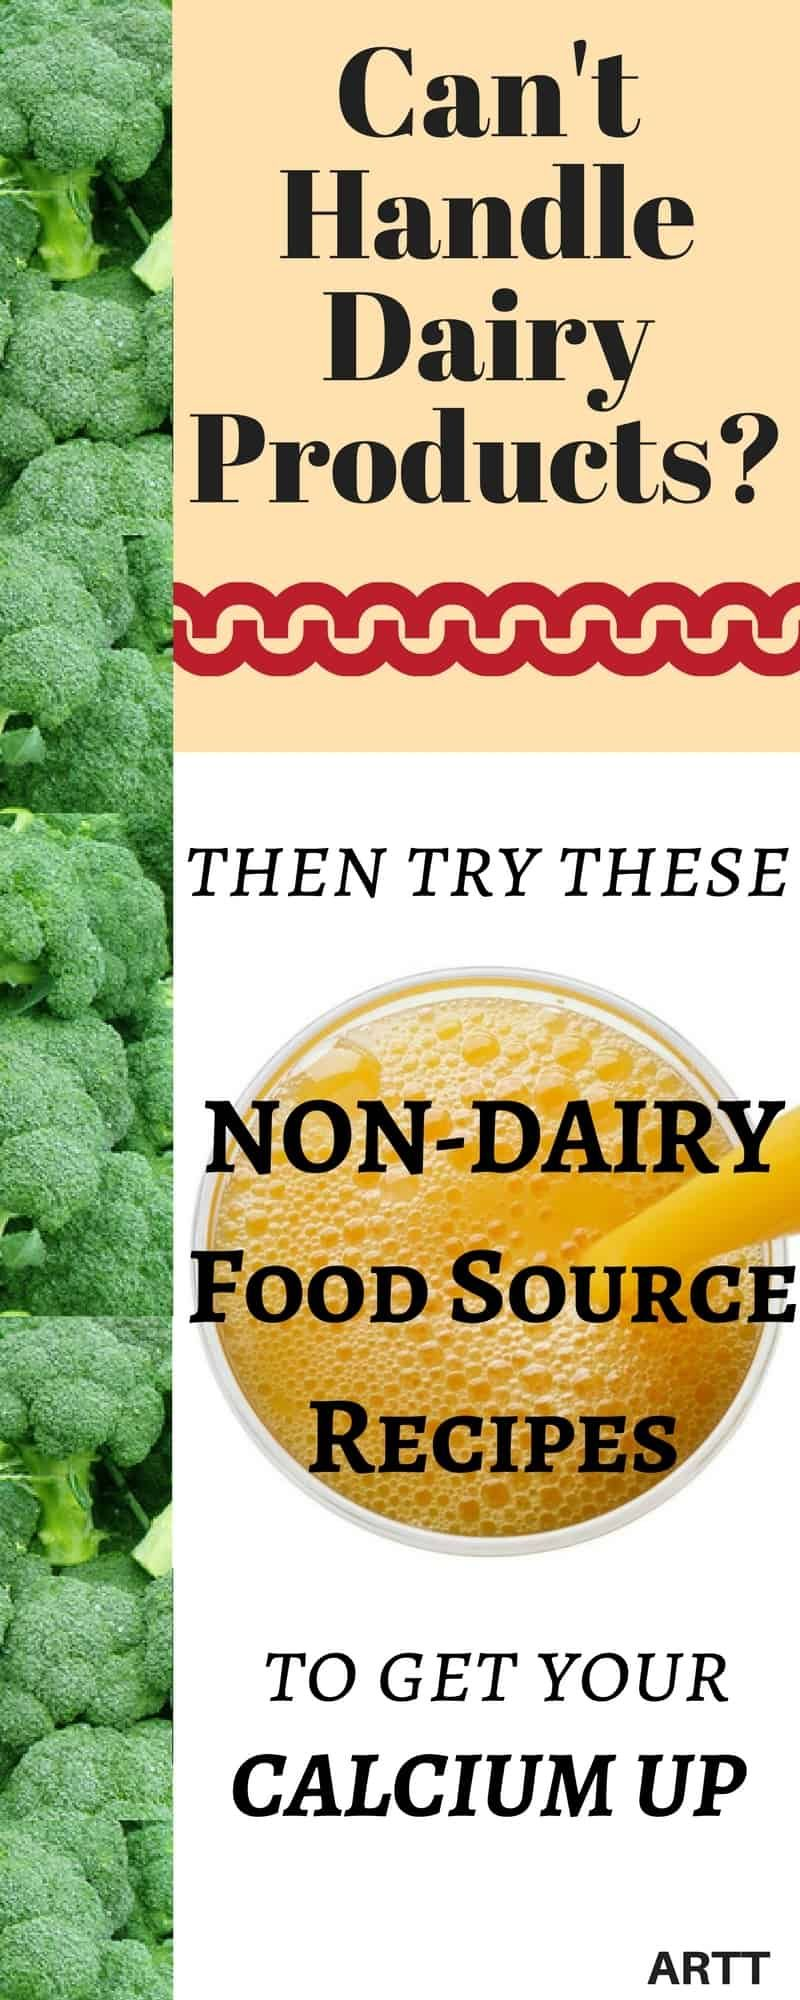 How to Boost Your Calcium Levels Without Dairy Products